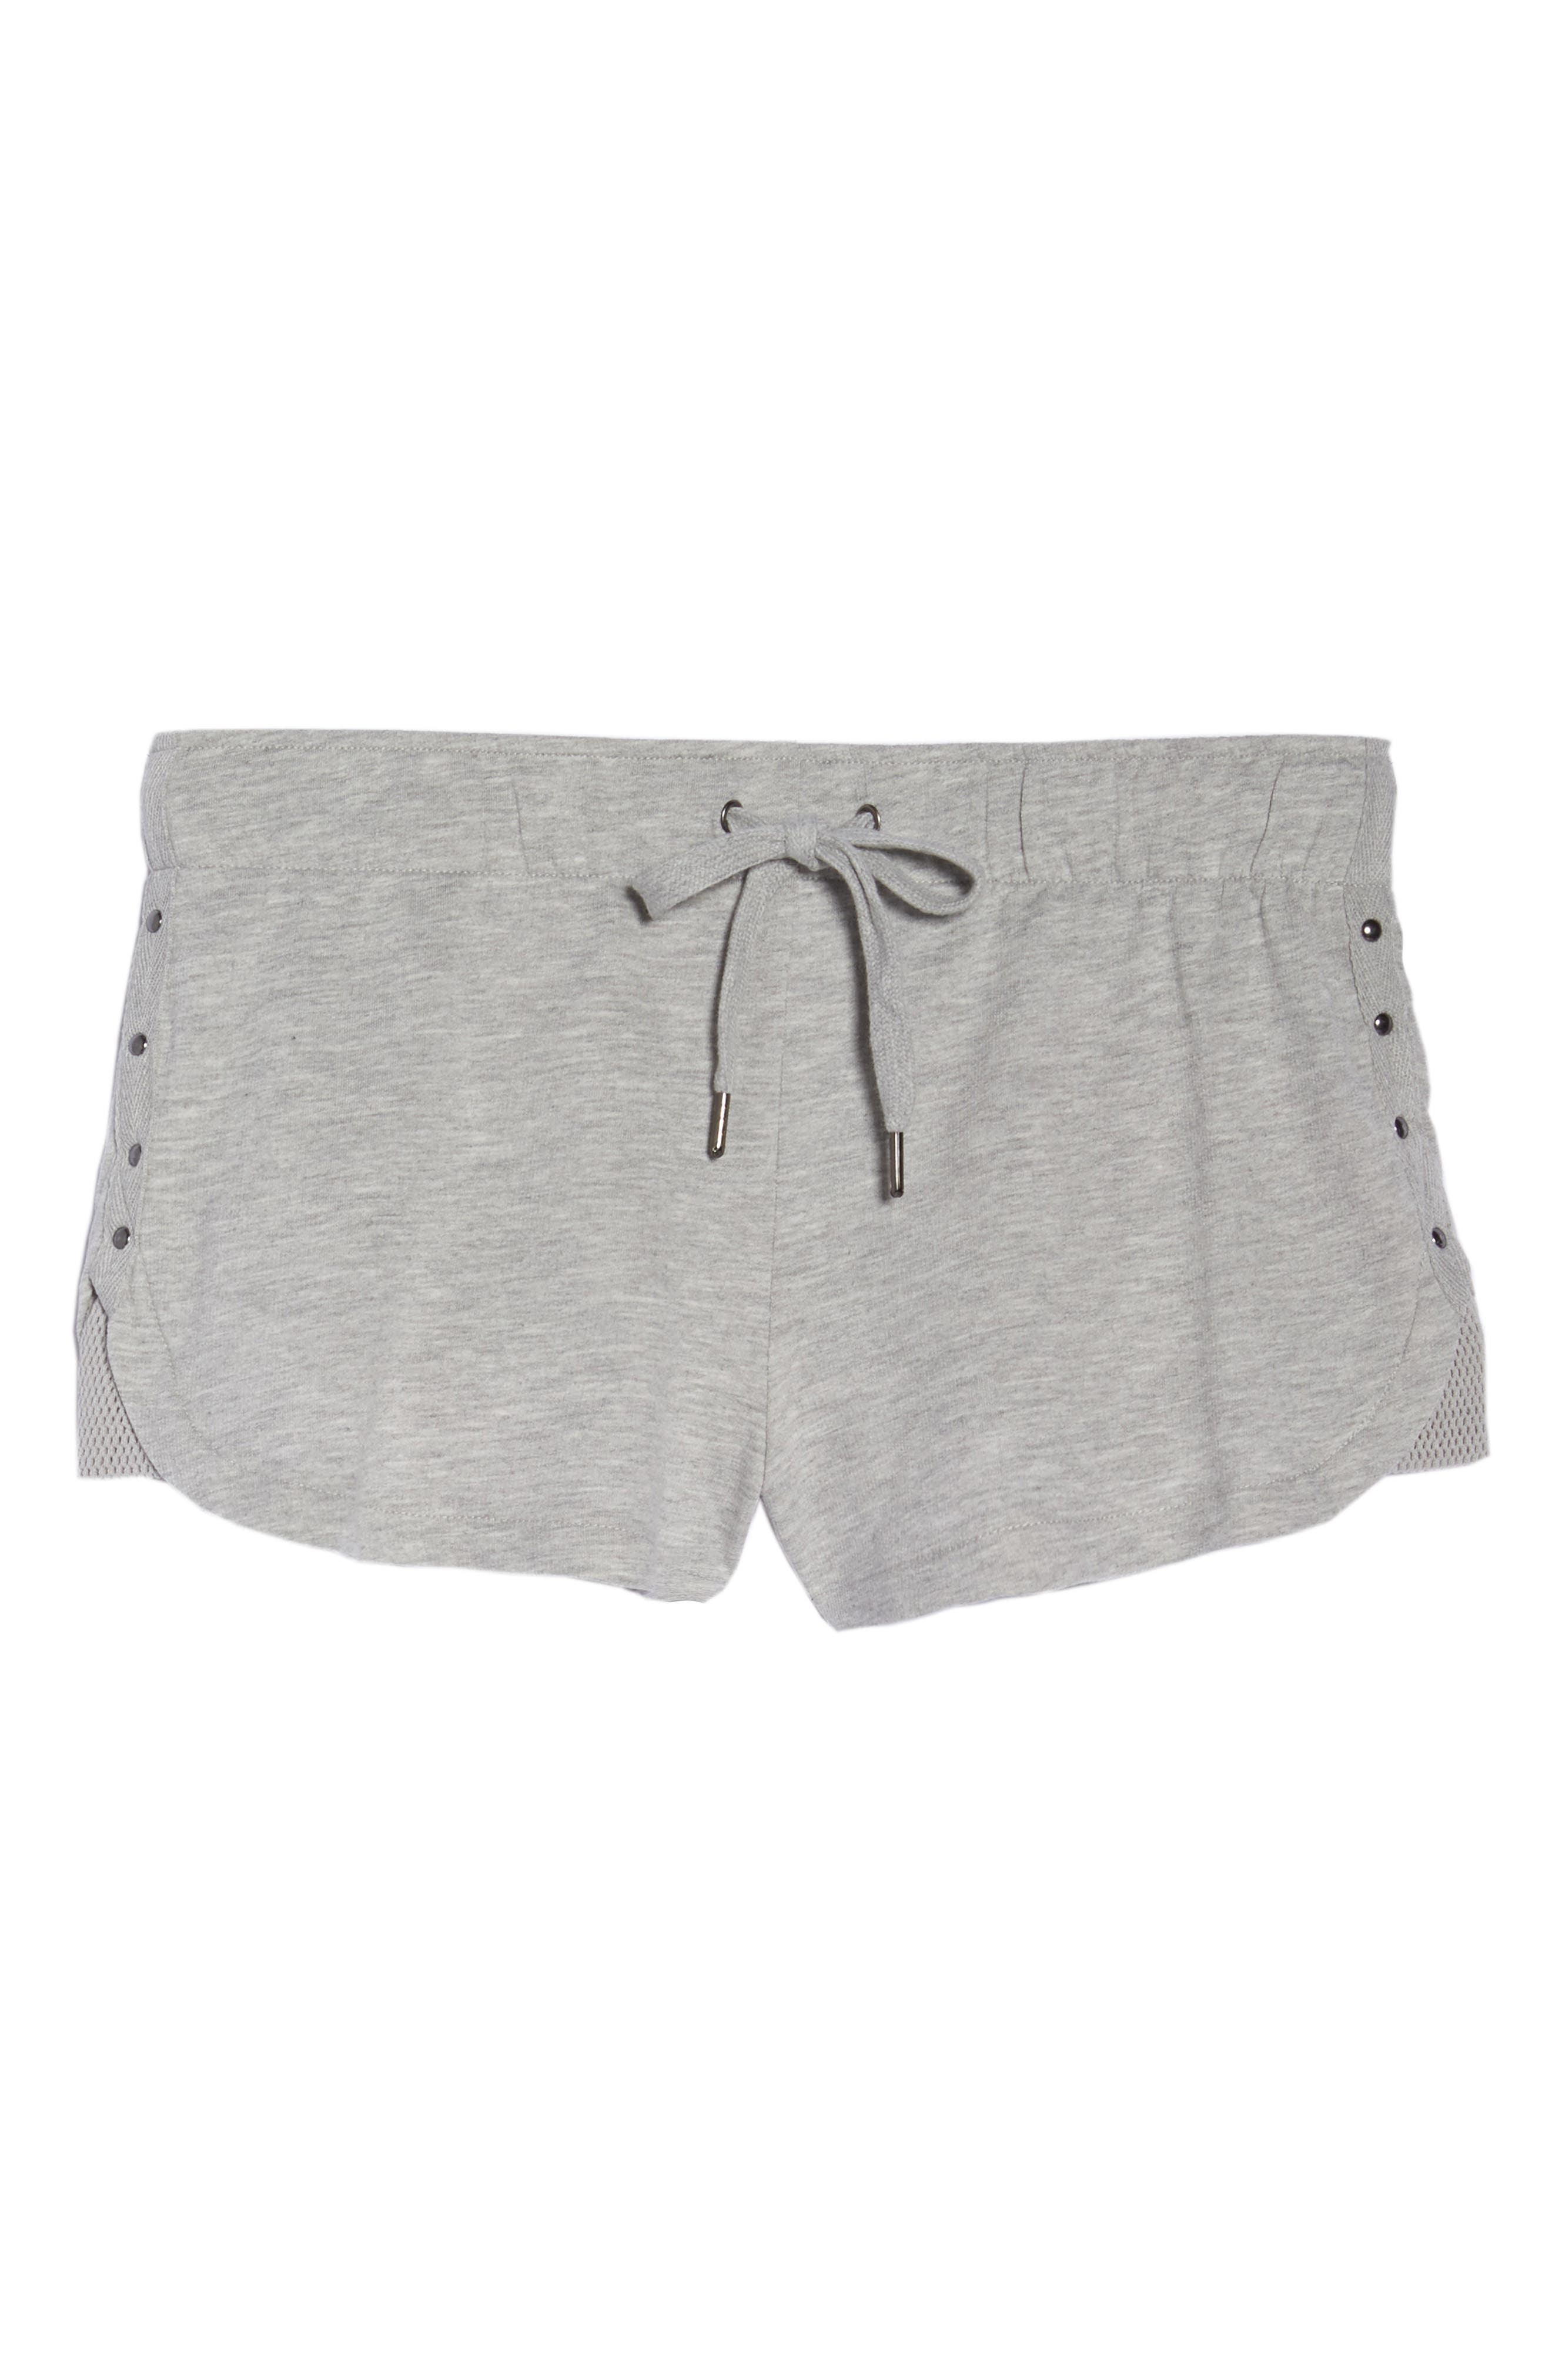 Pajama Shorts,                             Alternate thumbnail 7, color,                             H Grey